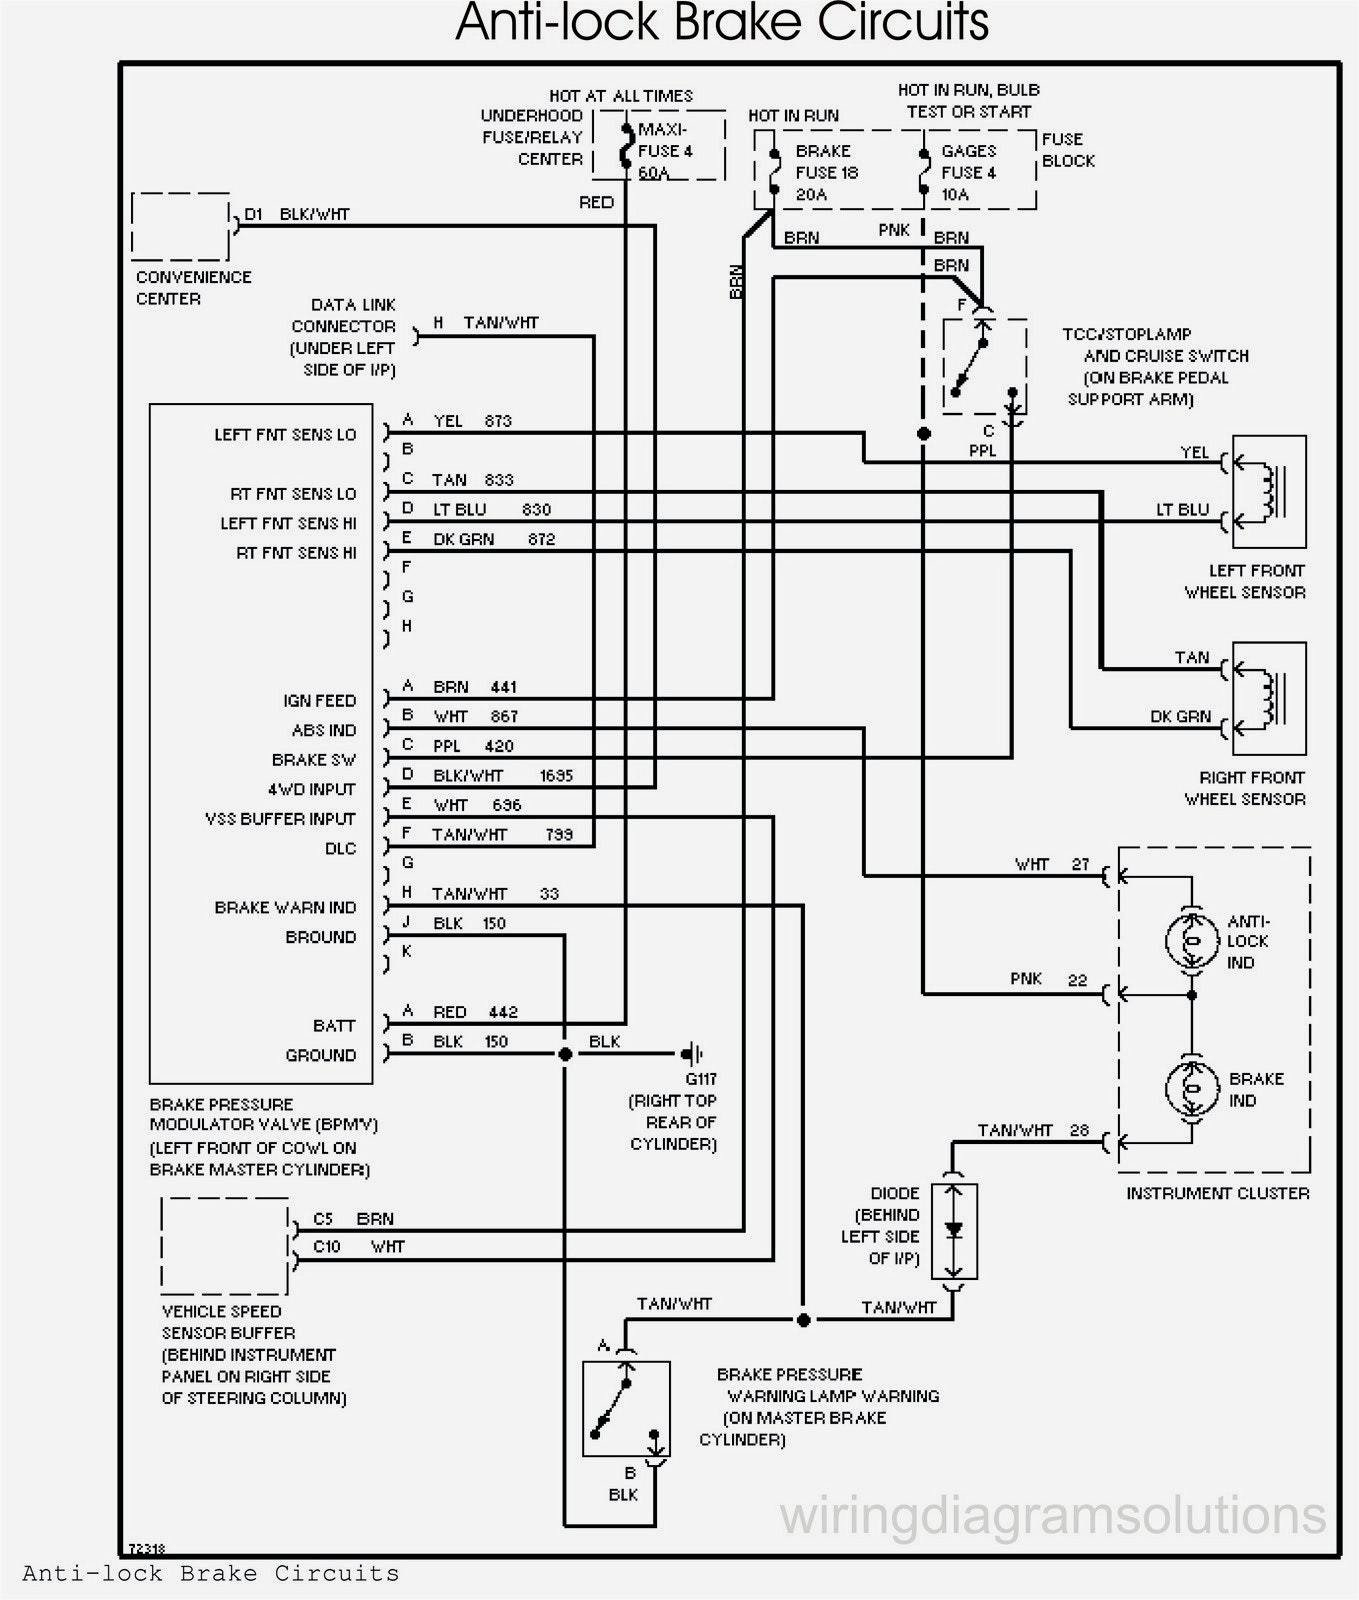 Voyager Backup Camera Wiring Diagram